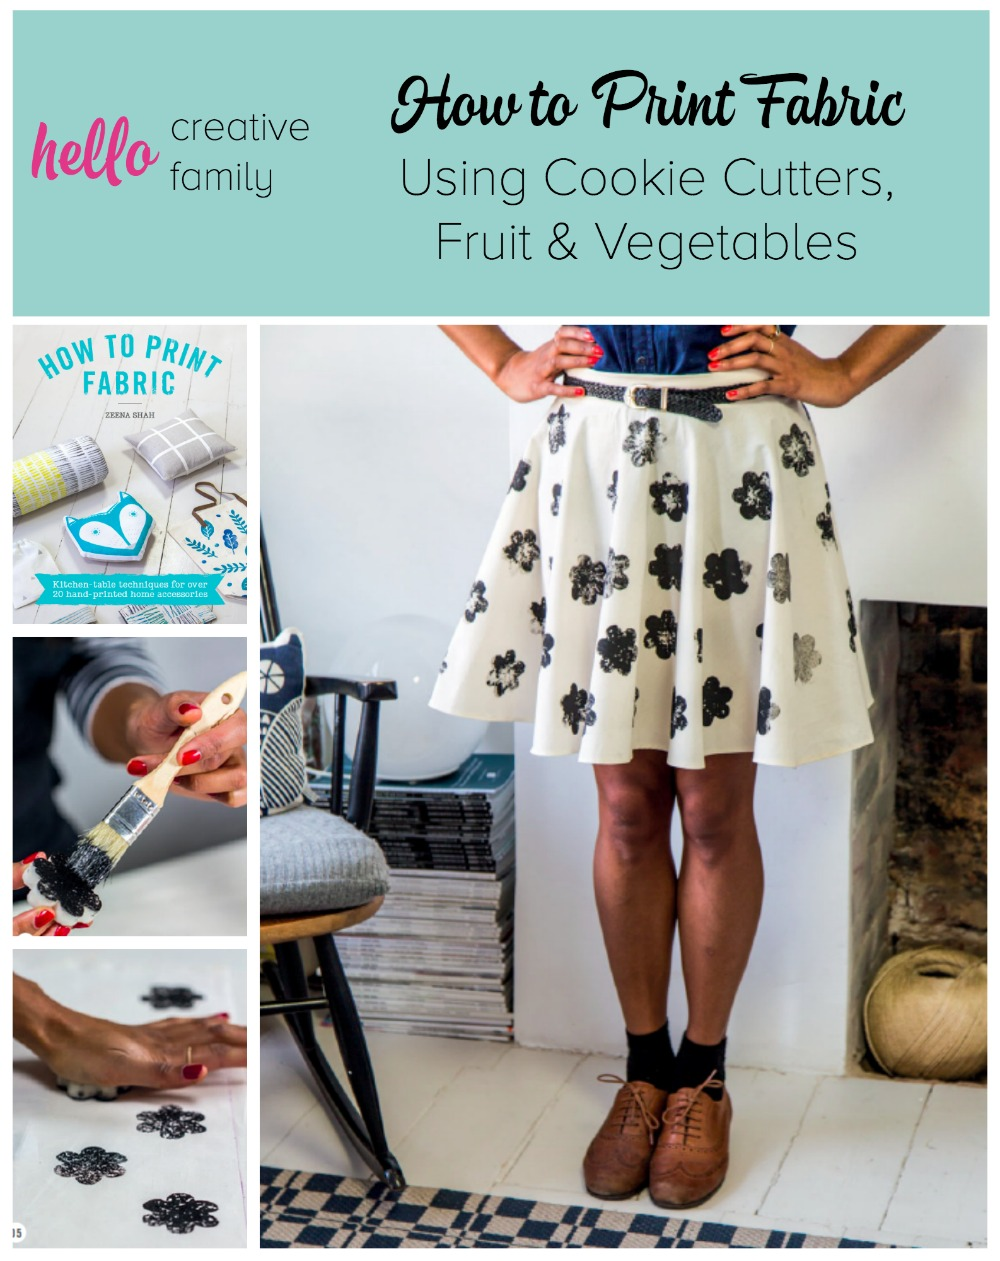 Want to print beautiful fabric at home? Learn how to make your own fabric designs using cookie cutters, fruit and vegetables!